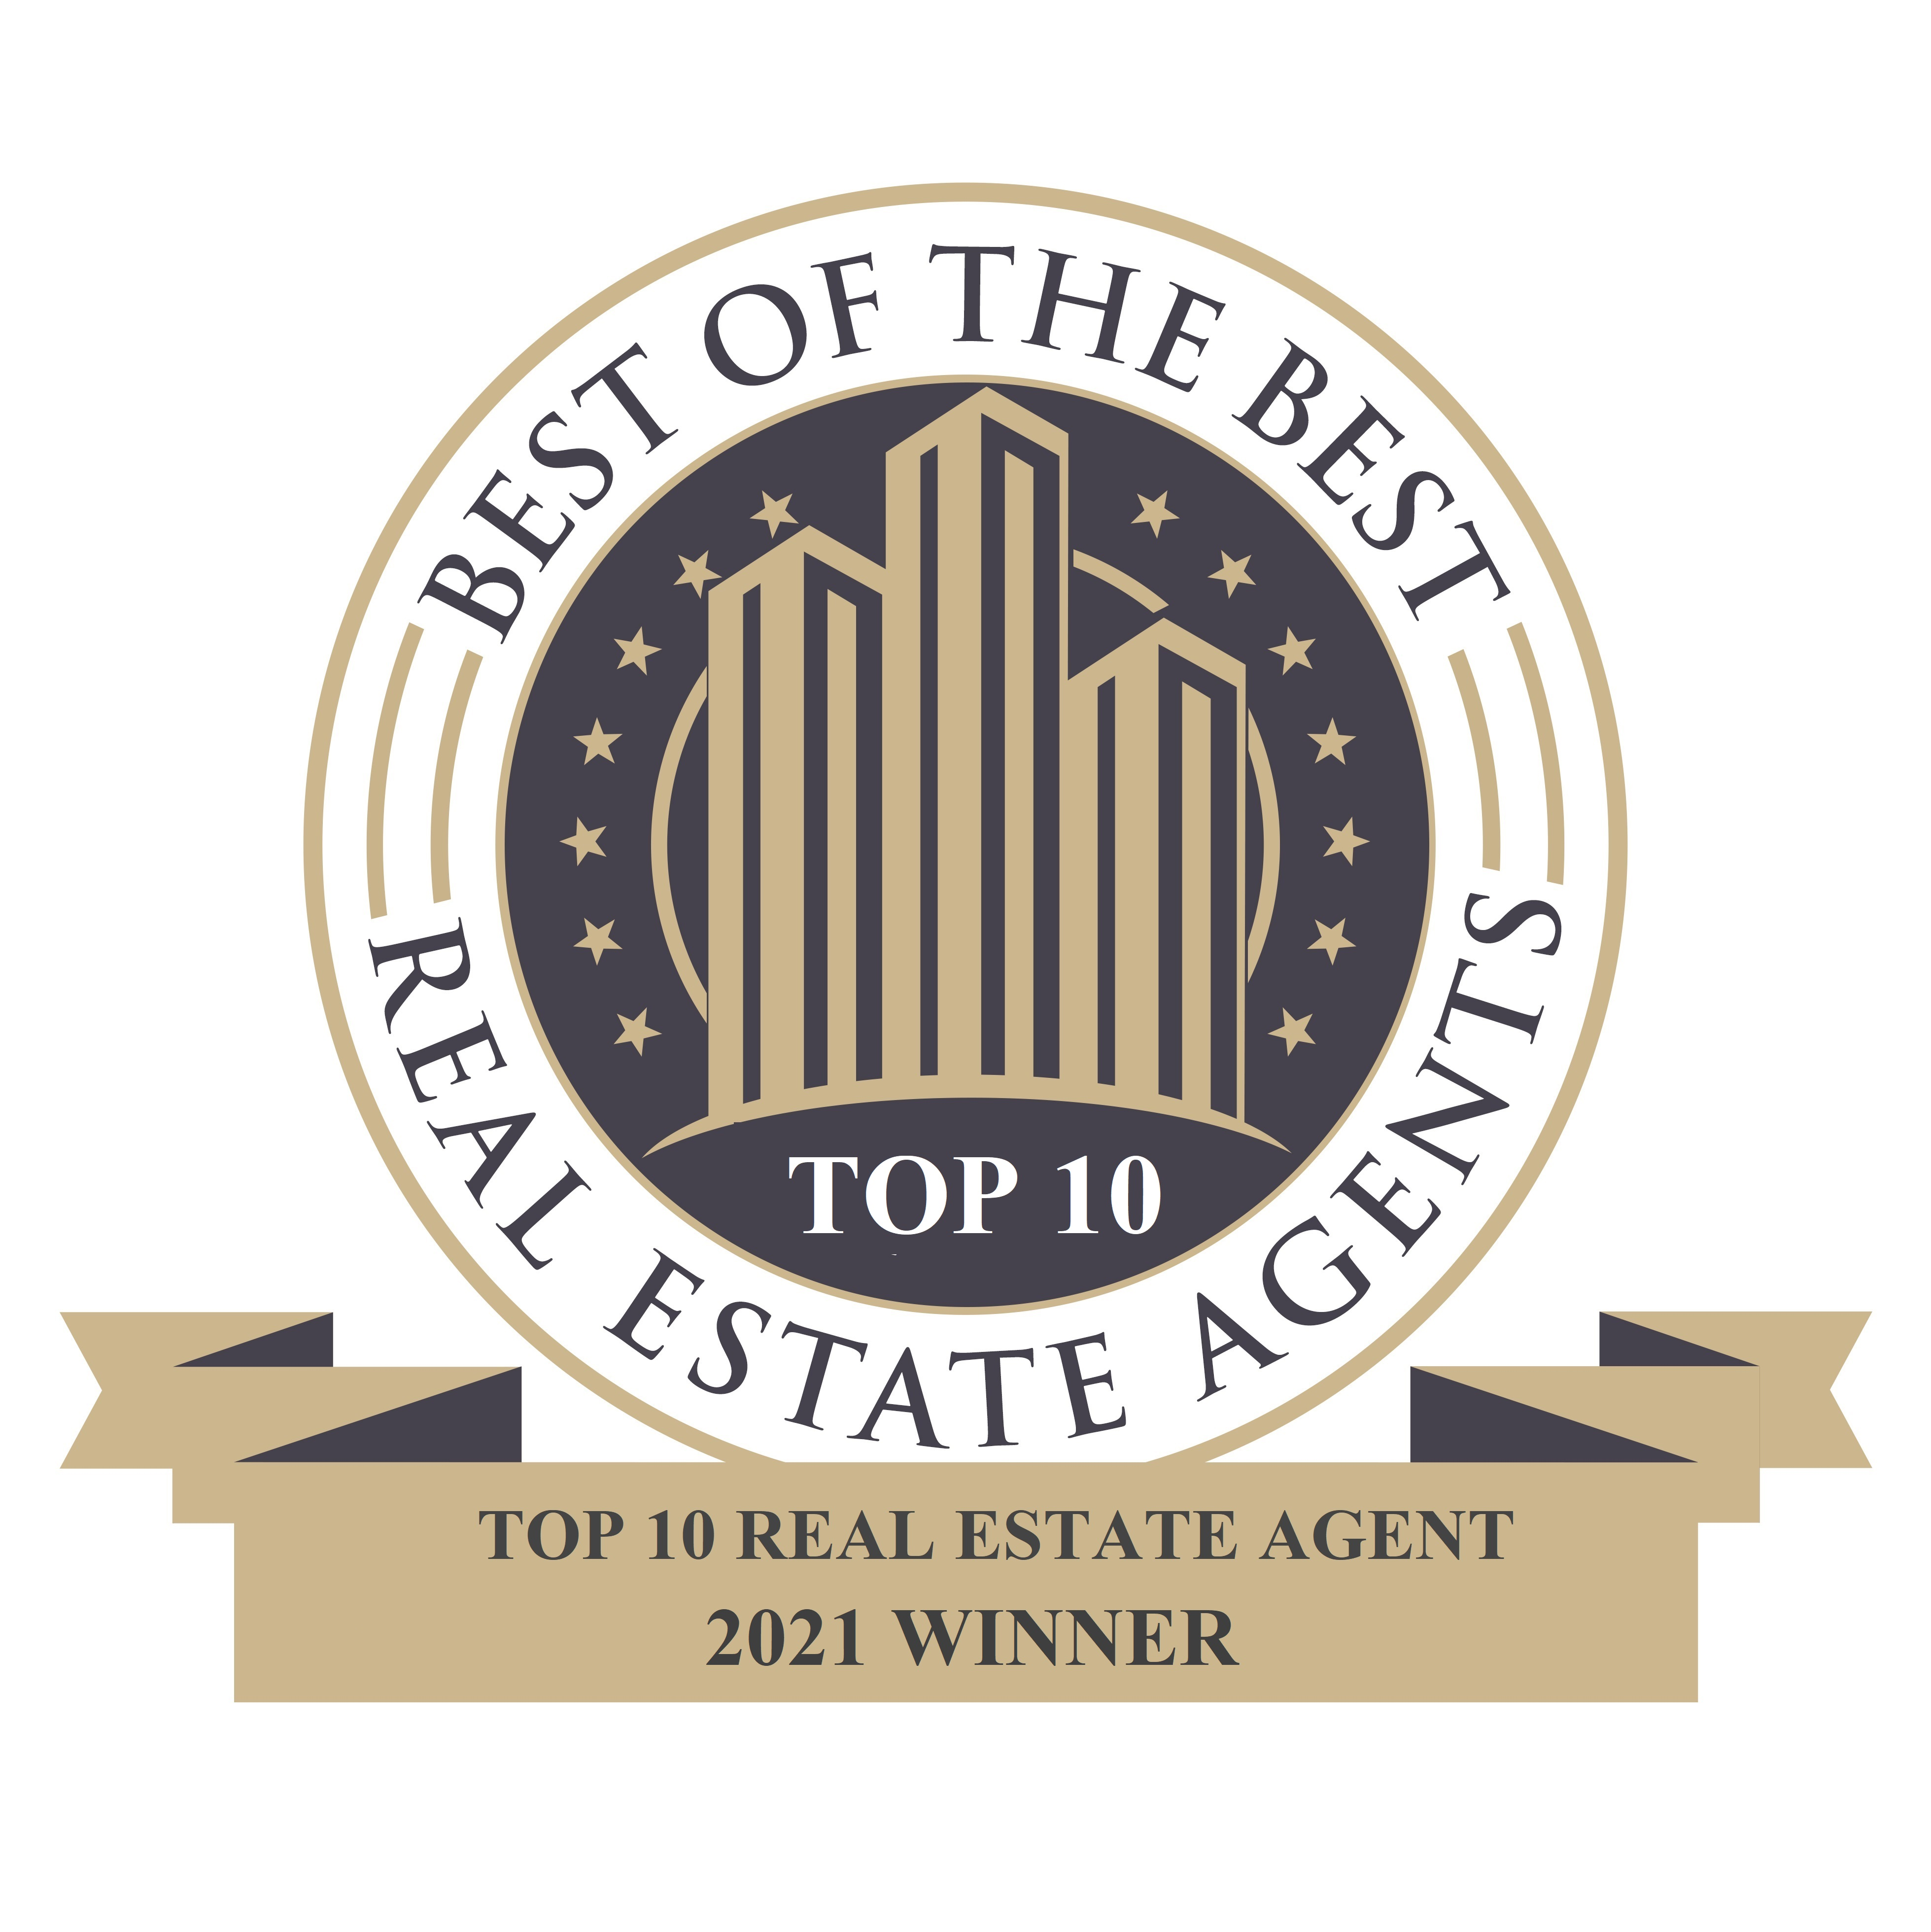 Best of the Best Real Estate Agent